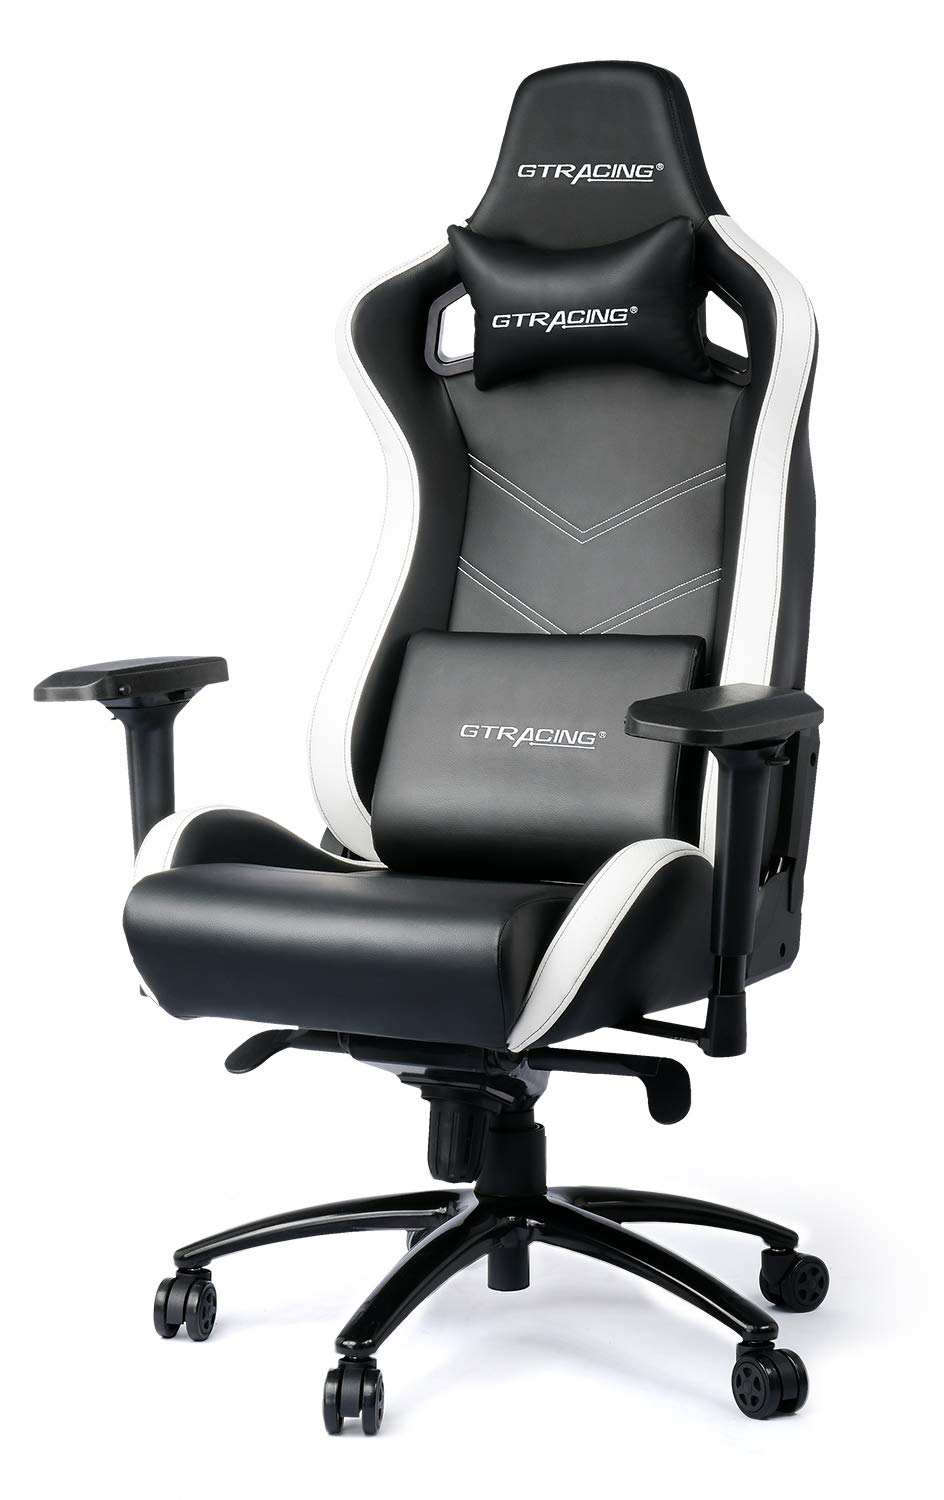 GTRACING Luxury Gaming Chair Racing Style with High Backrest, Recliner, Swivel, Tilt, 4D Armrests, Rocker Seat Height Adjustment Mechanisms White Black